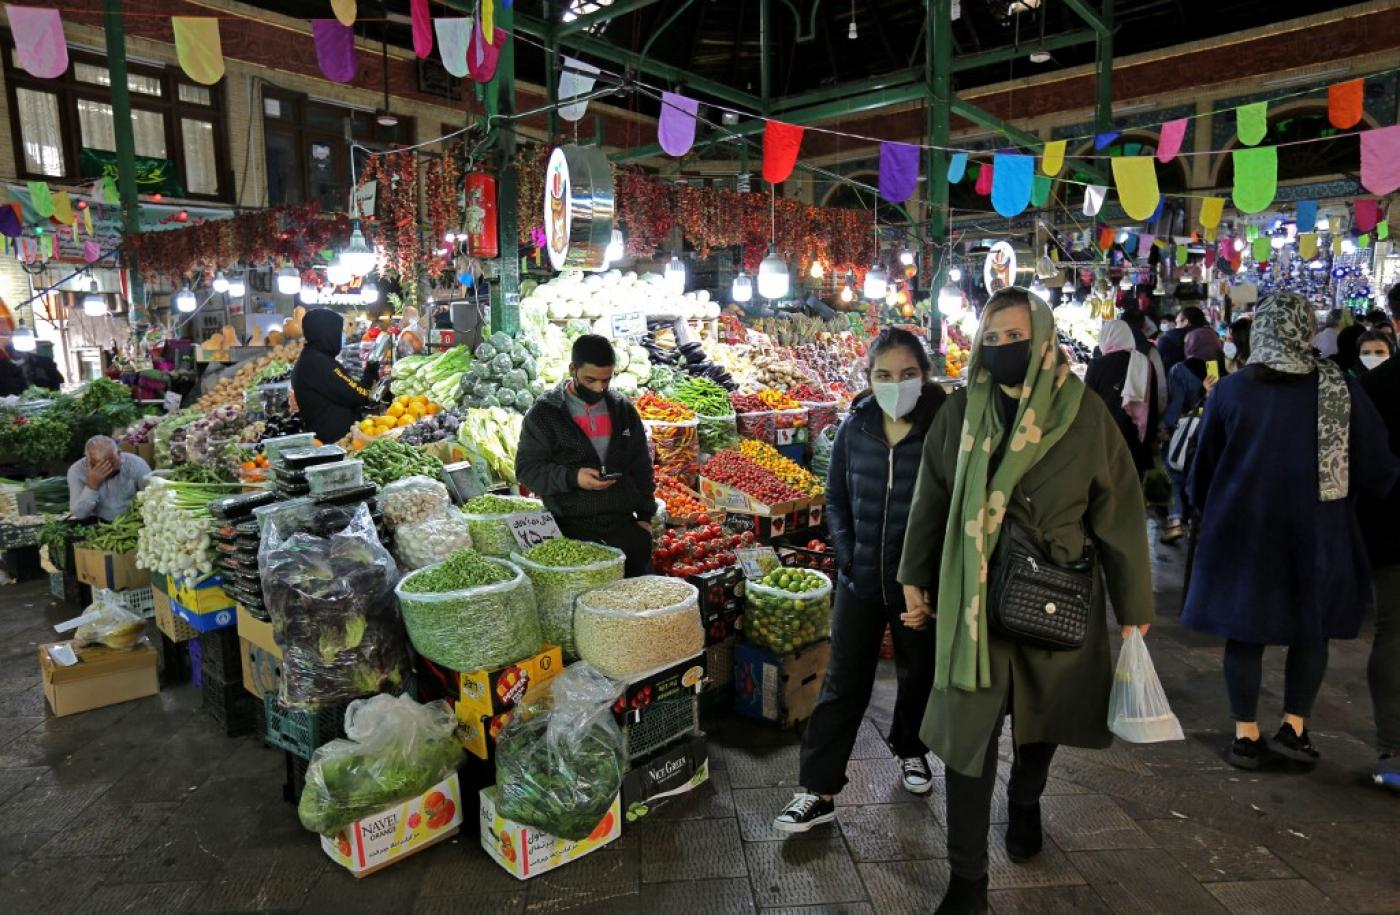 Mask-clad Iranians shop amid the Covid-19 pandemic, at the Tajrish Bazaar in Tehran on 17 March